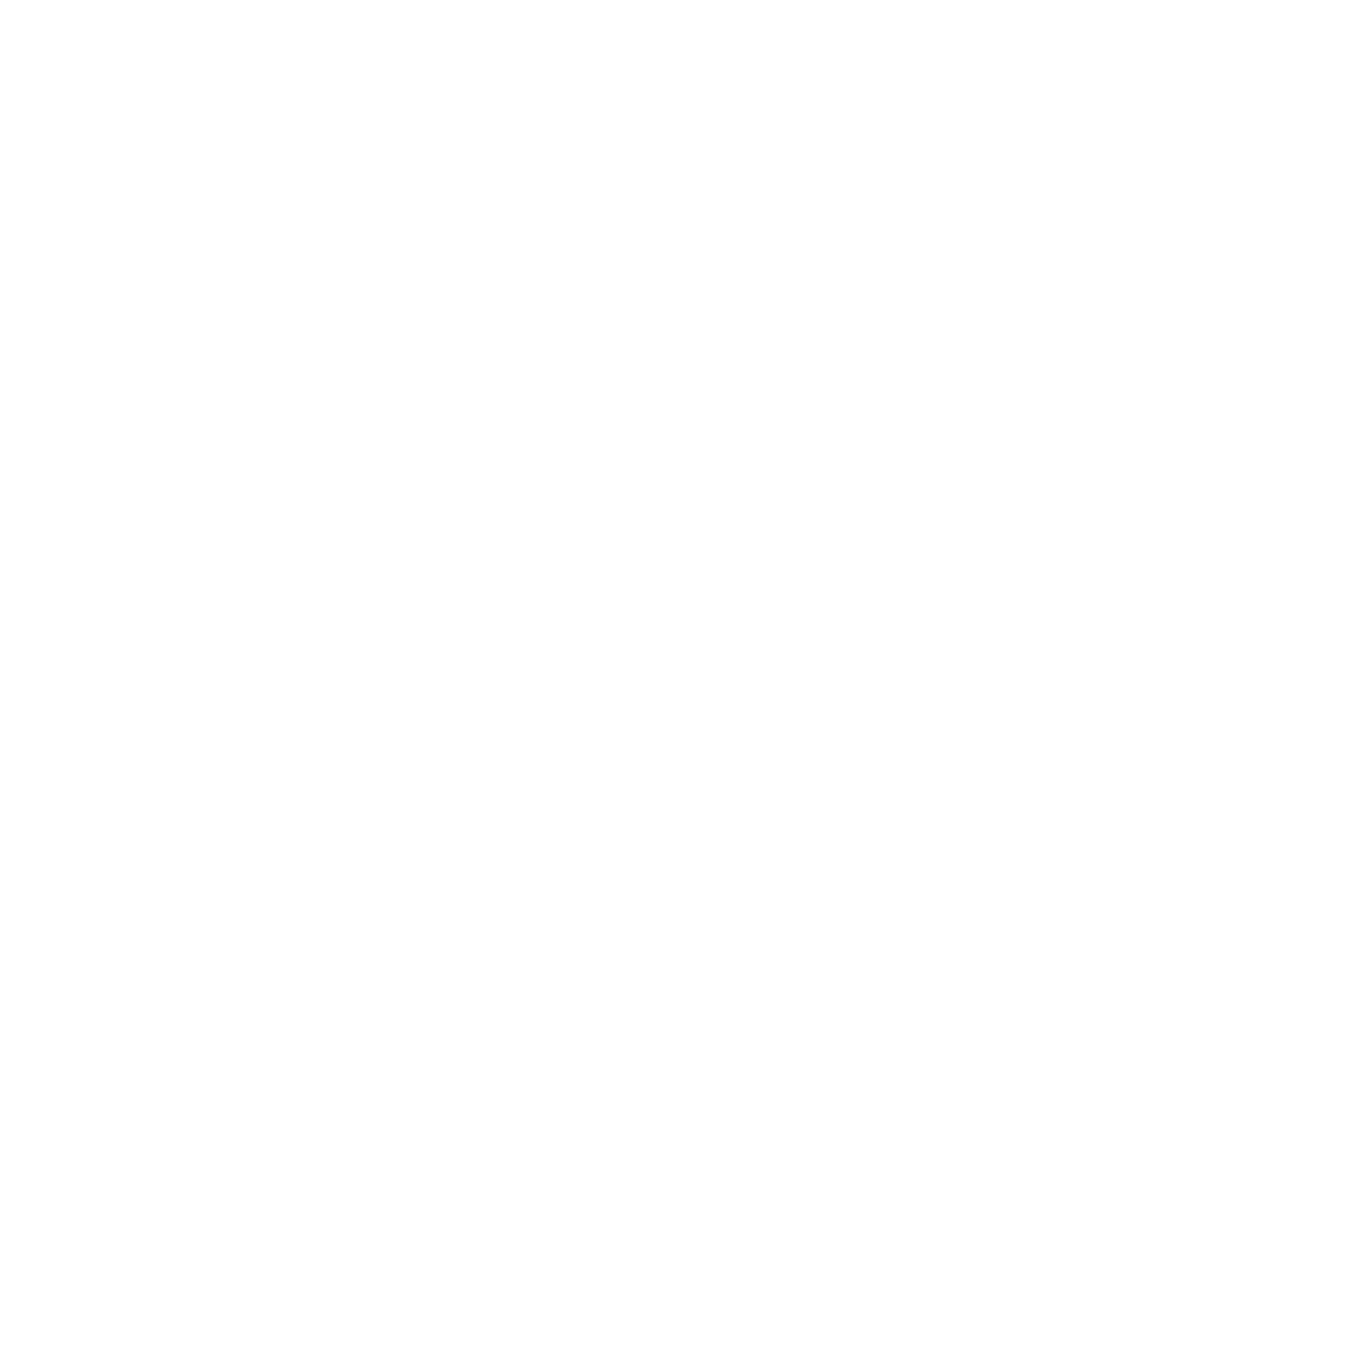 Drop the planets image